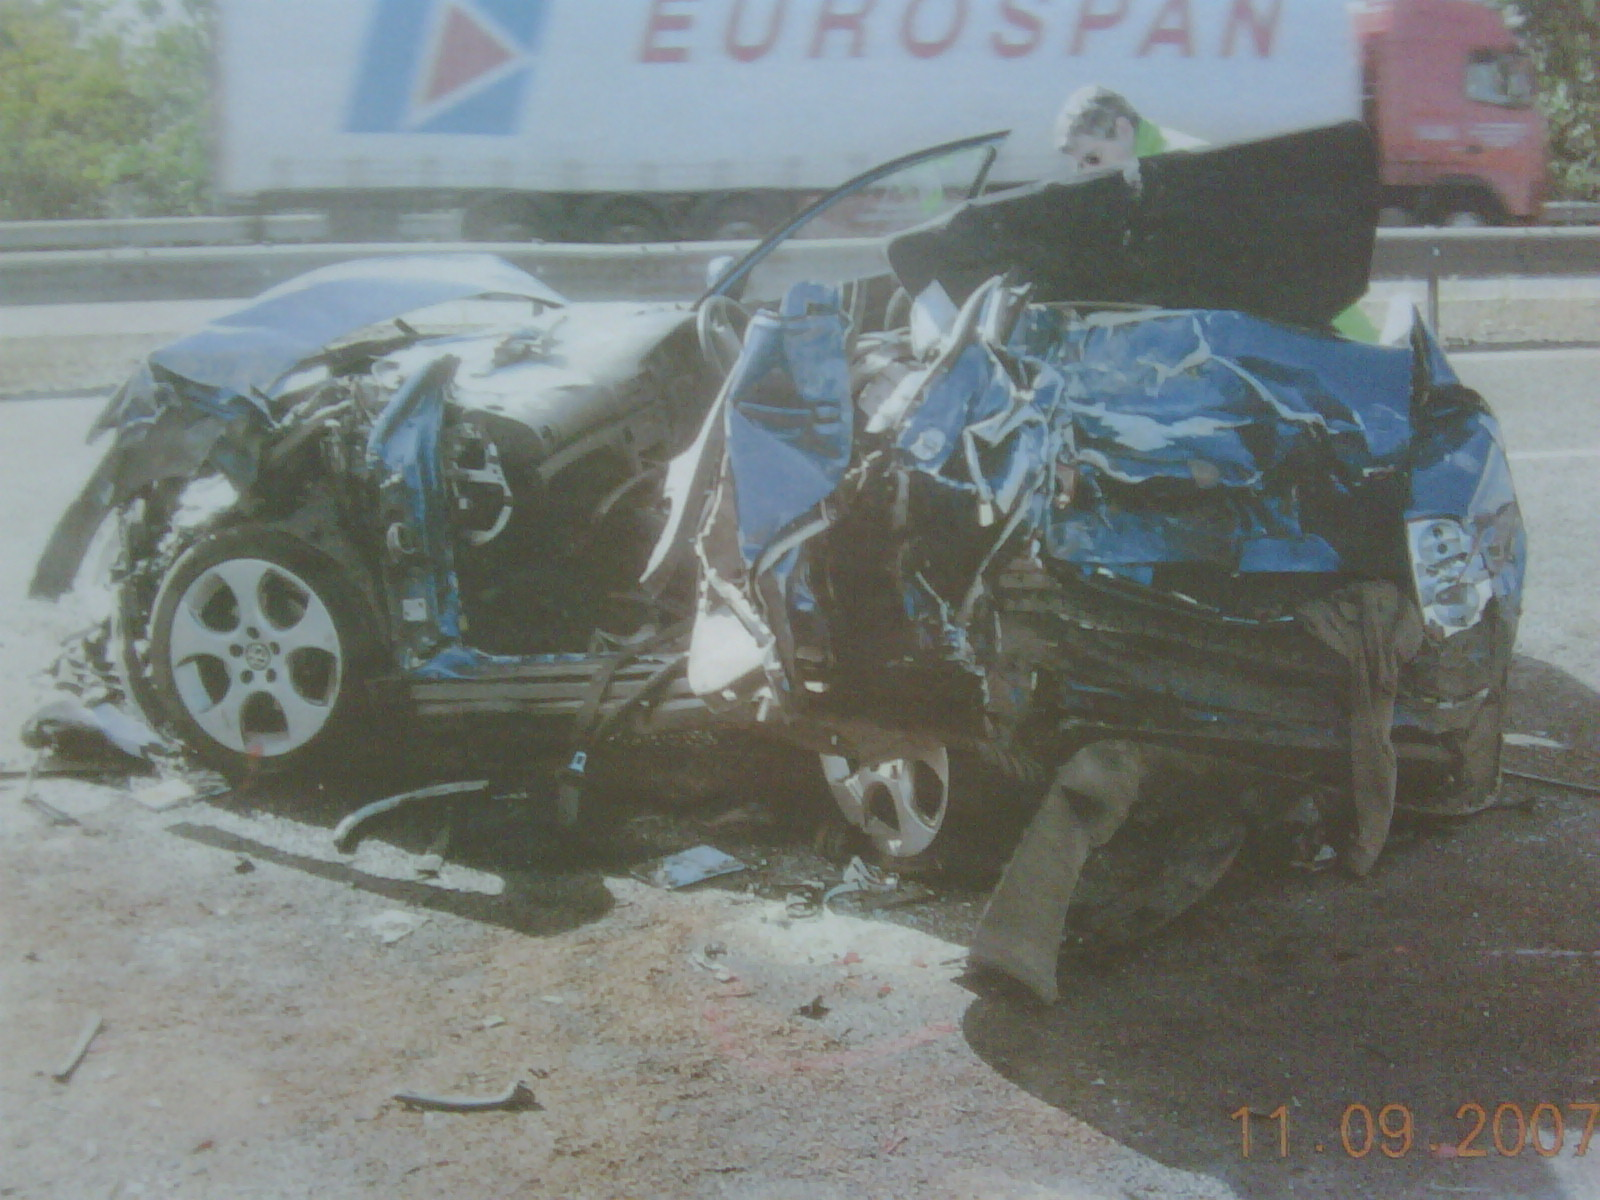 Accident image